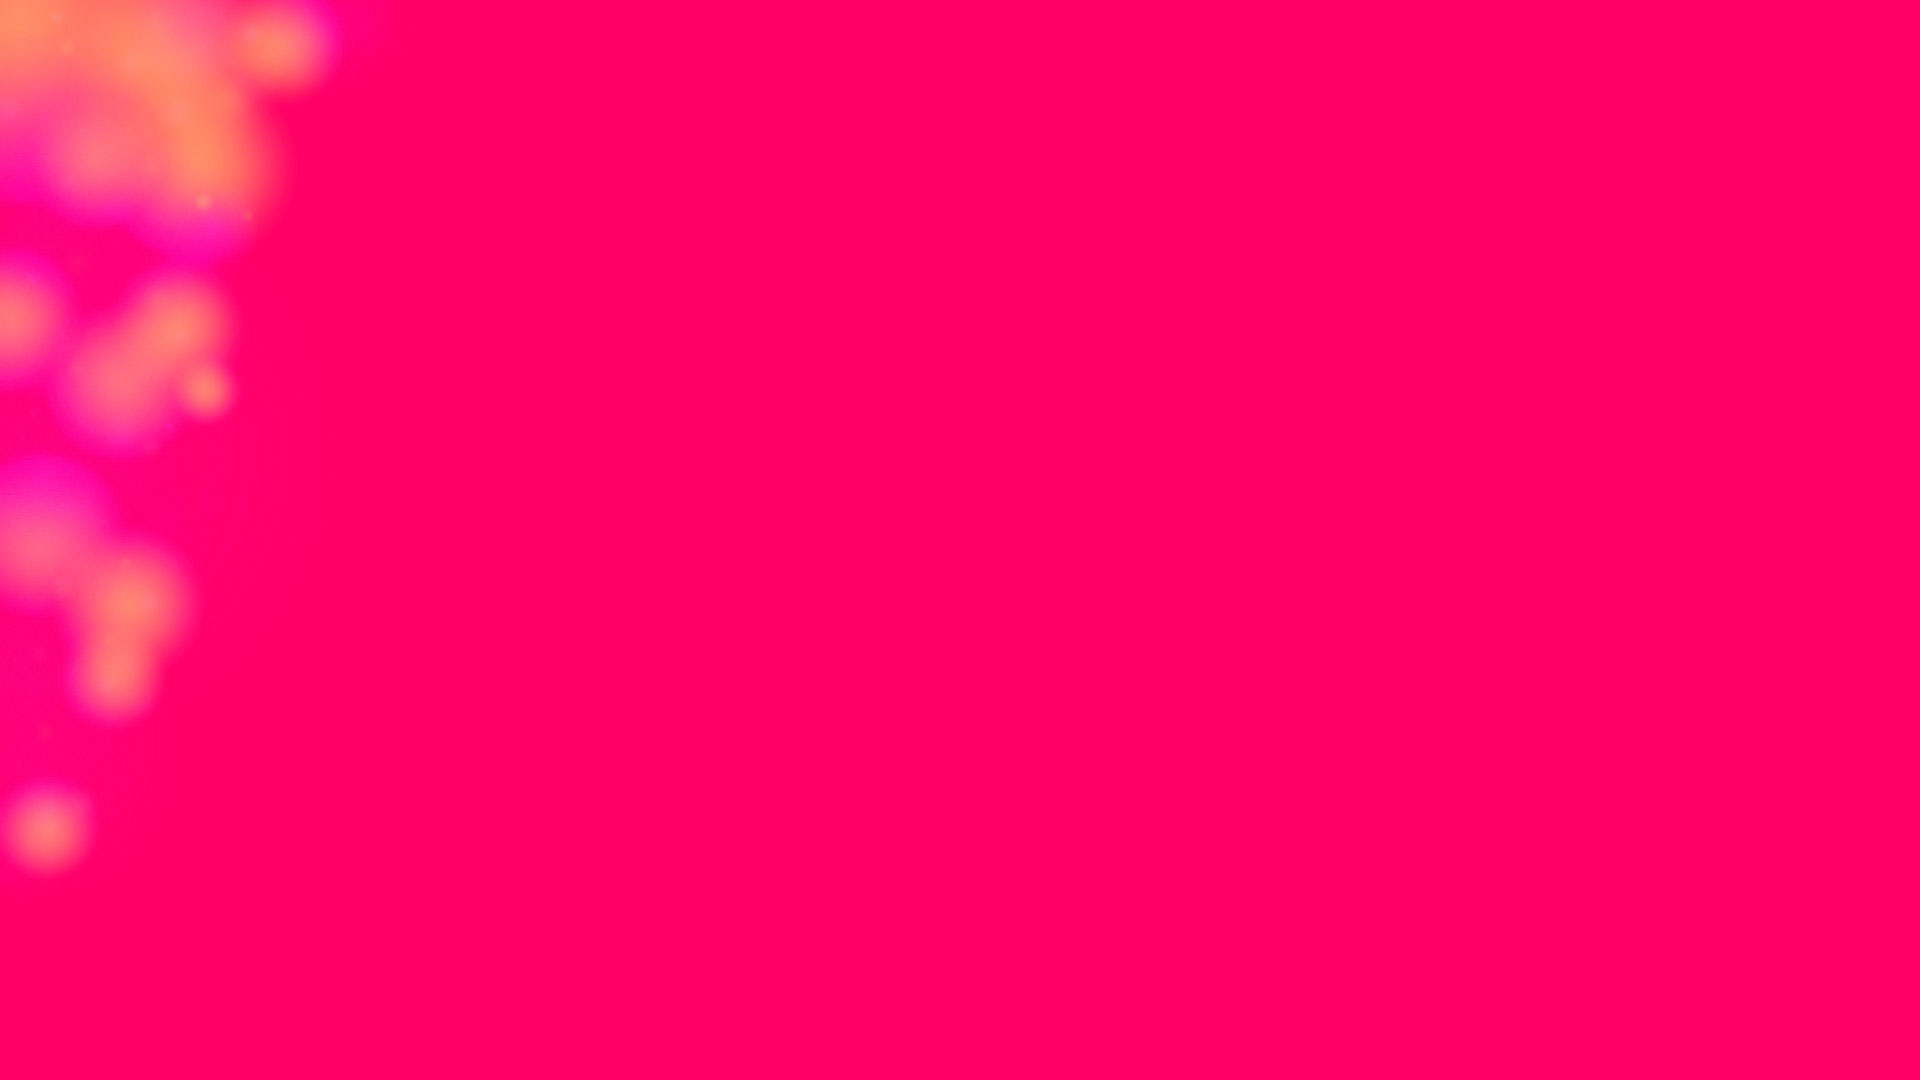 Description from Pink Background Pictures Art Wallpapers 267 Wallpaper :